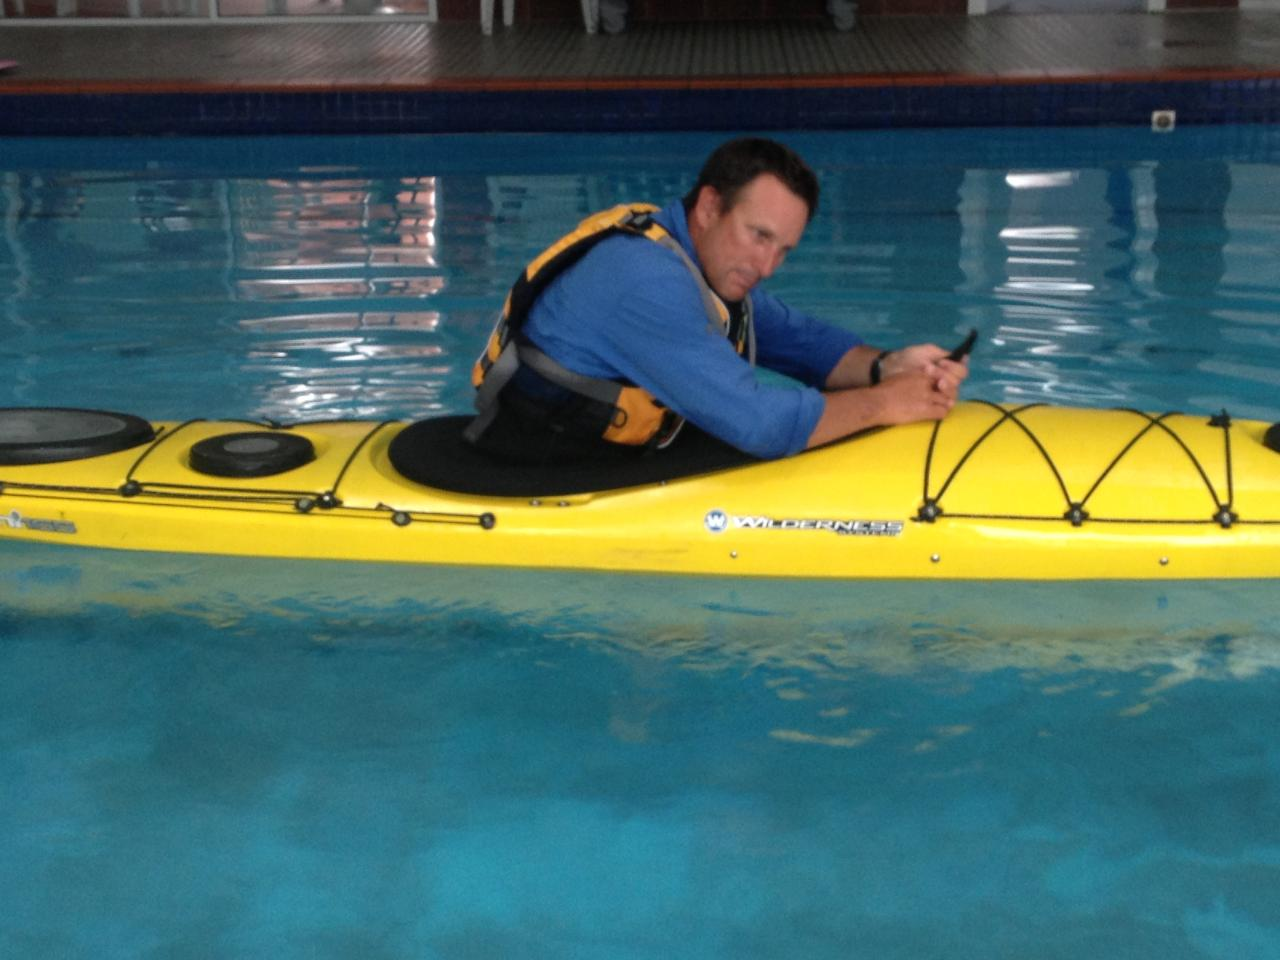 Kayak Instruction - Rescue Pool Session